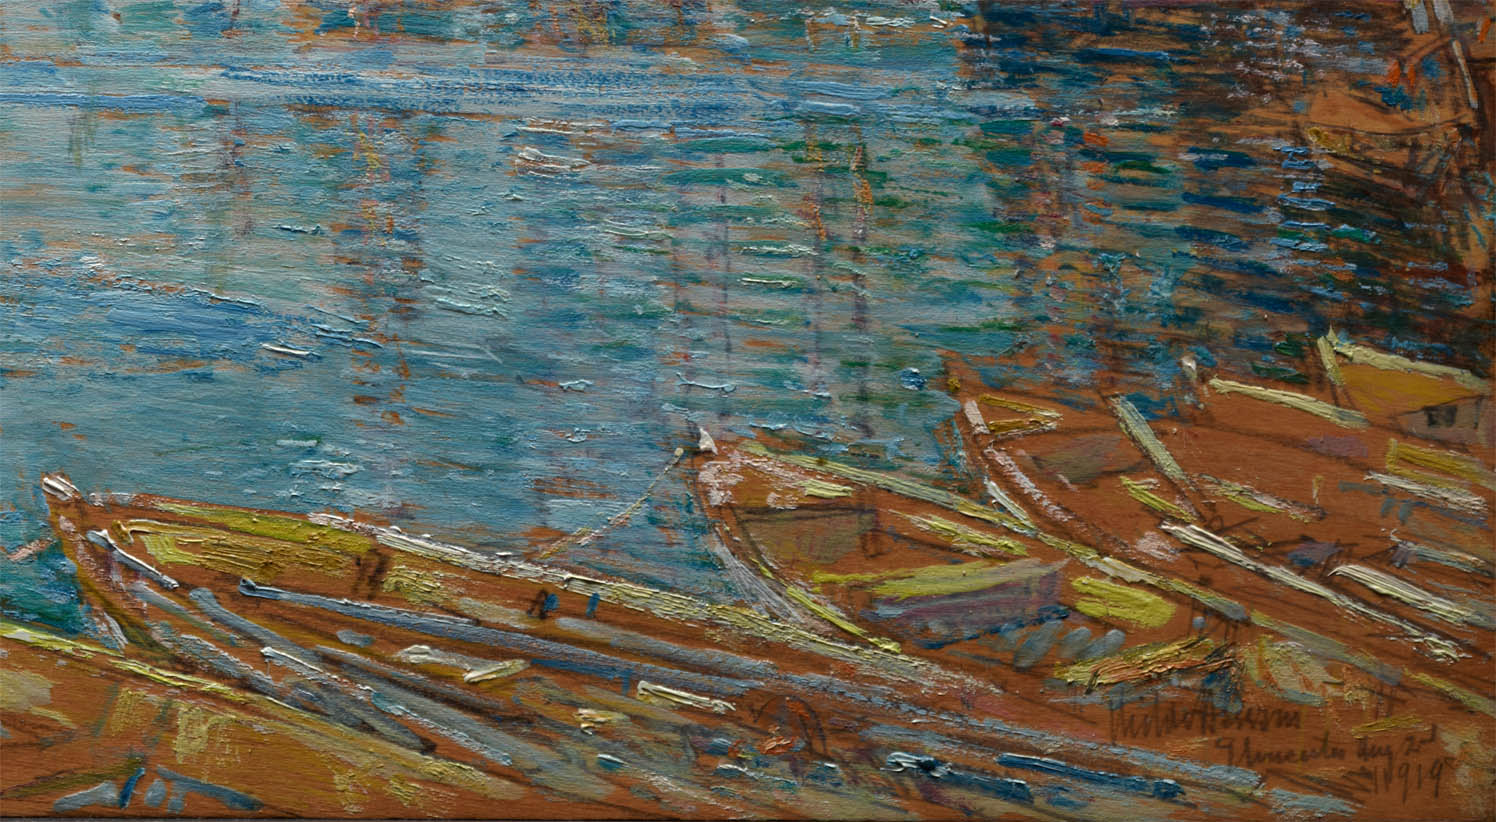 Harbor of a Thousand Masts (1919-d-5)